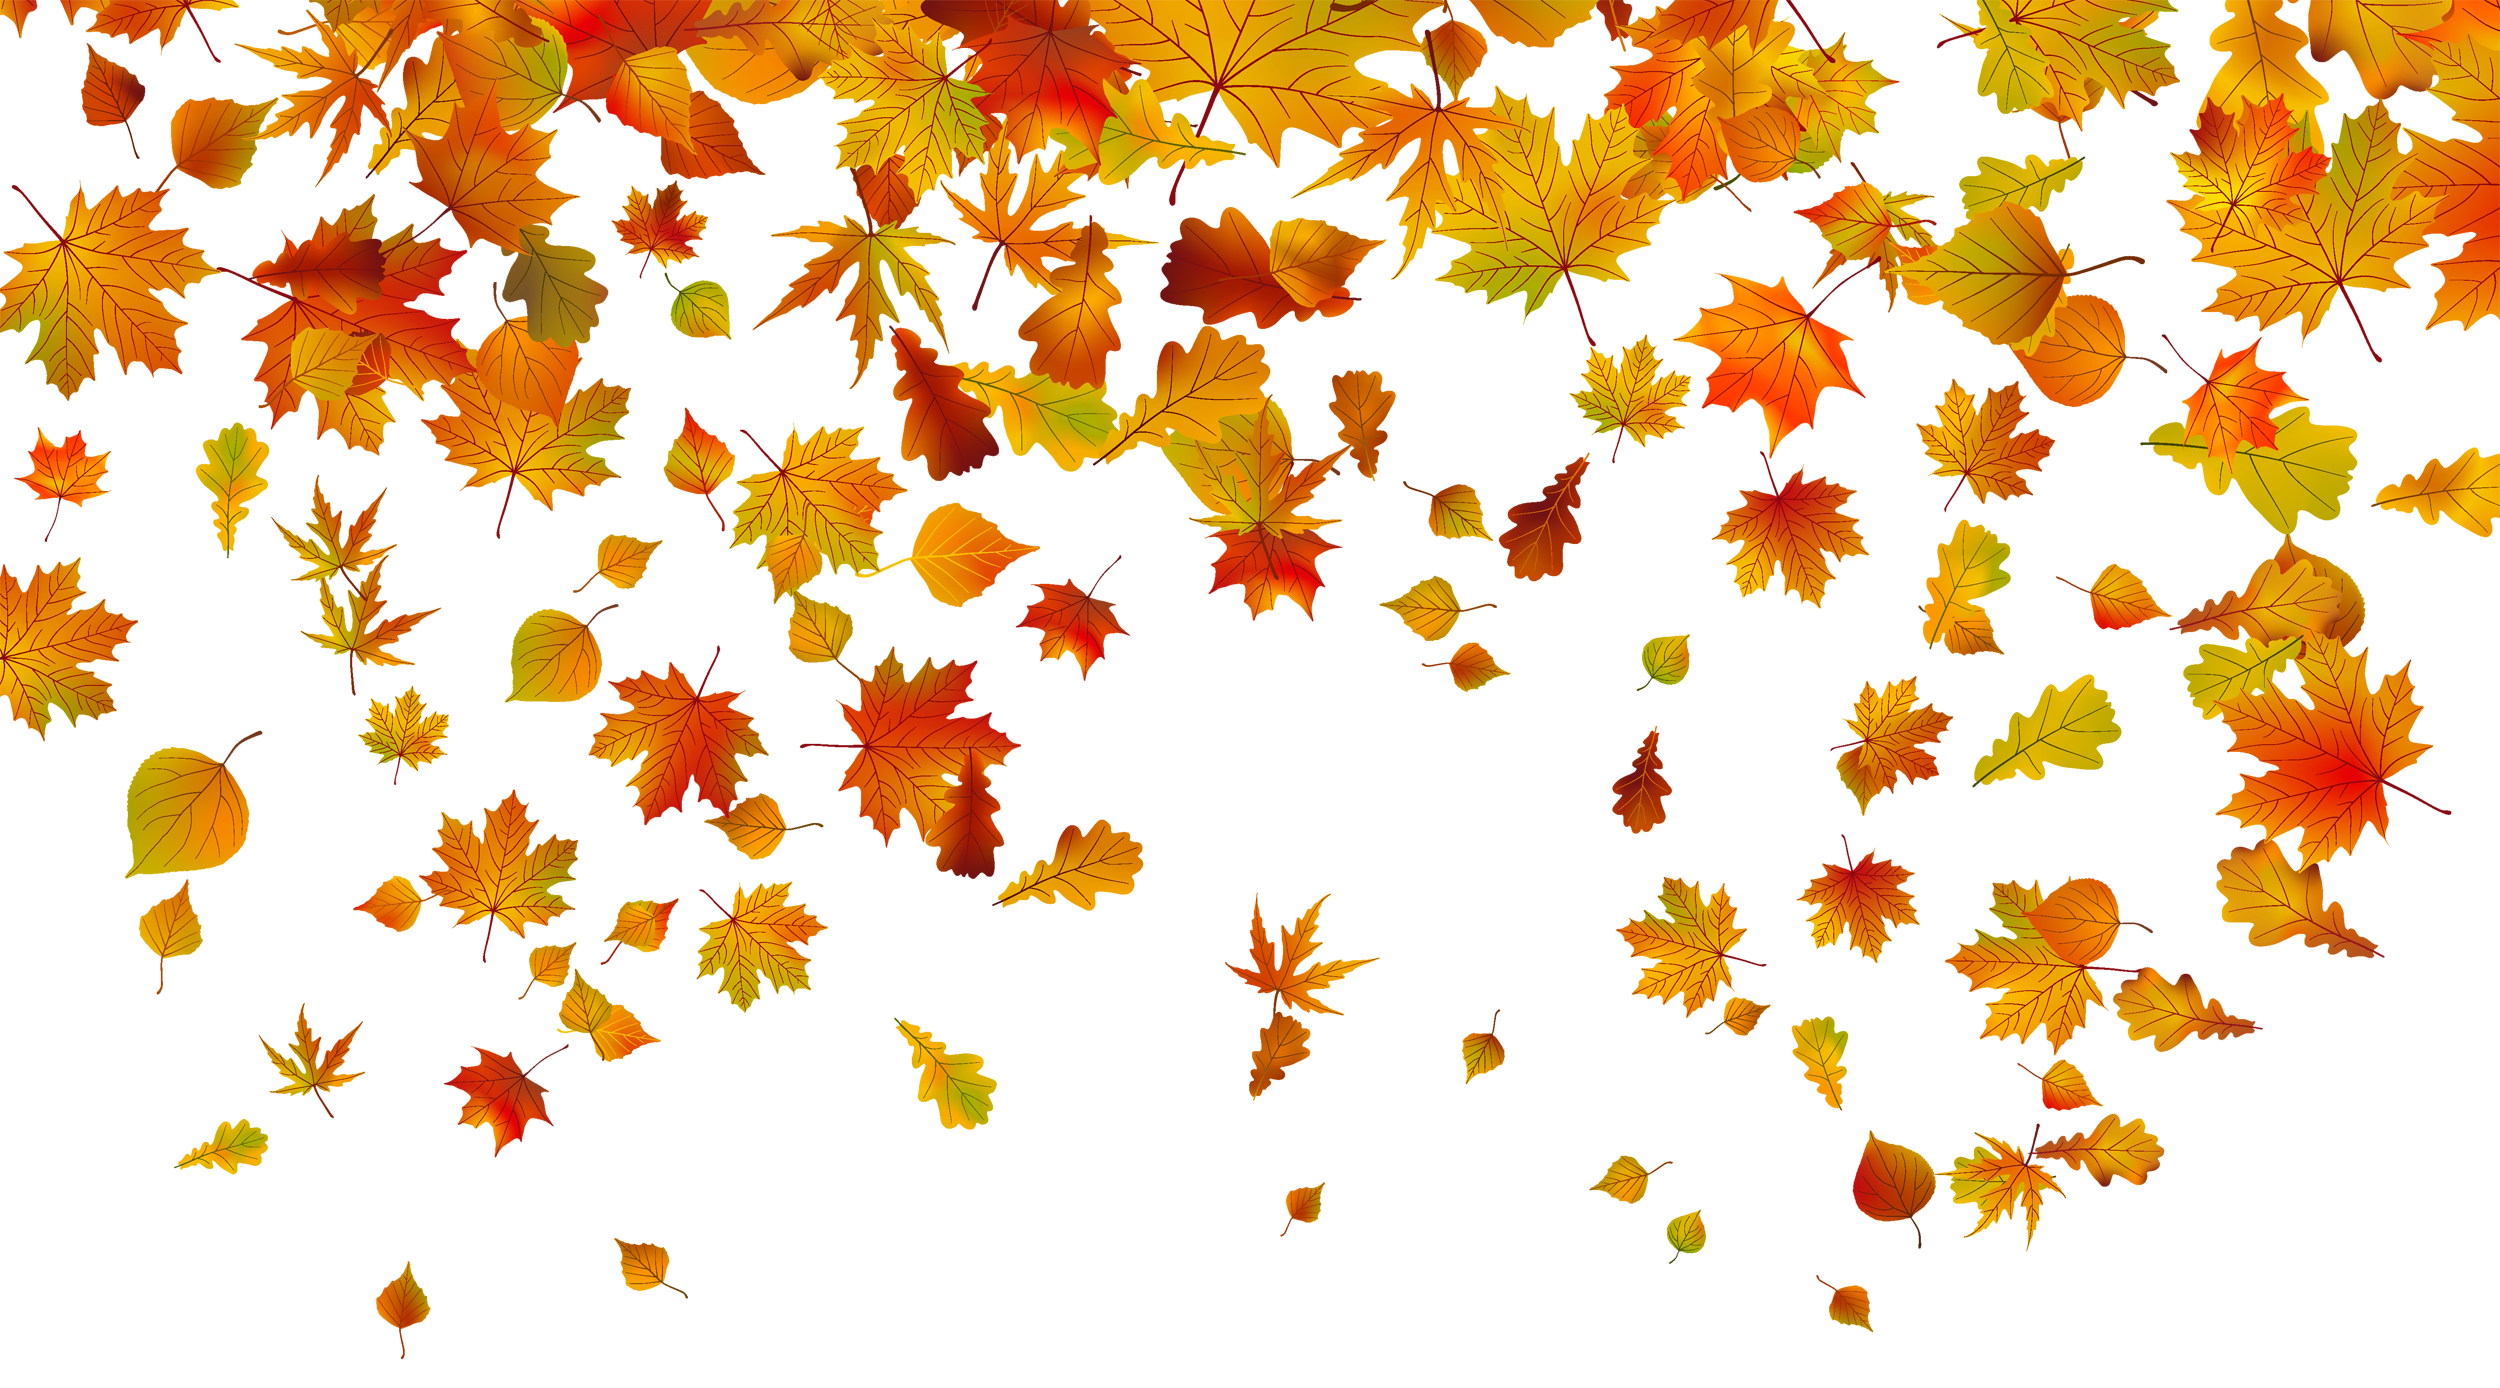 Free fall clipart transparent background.